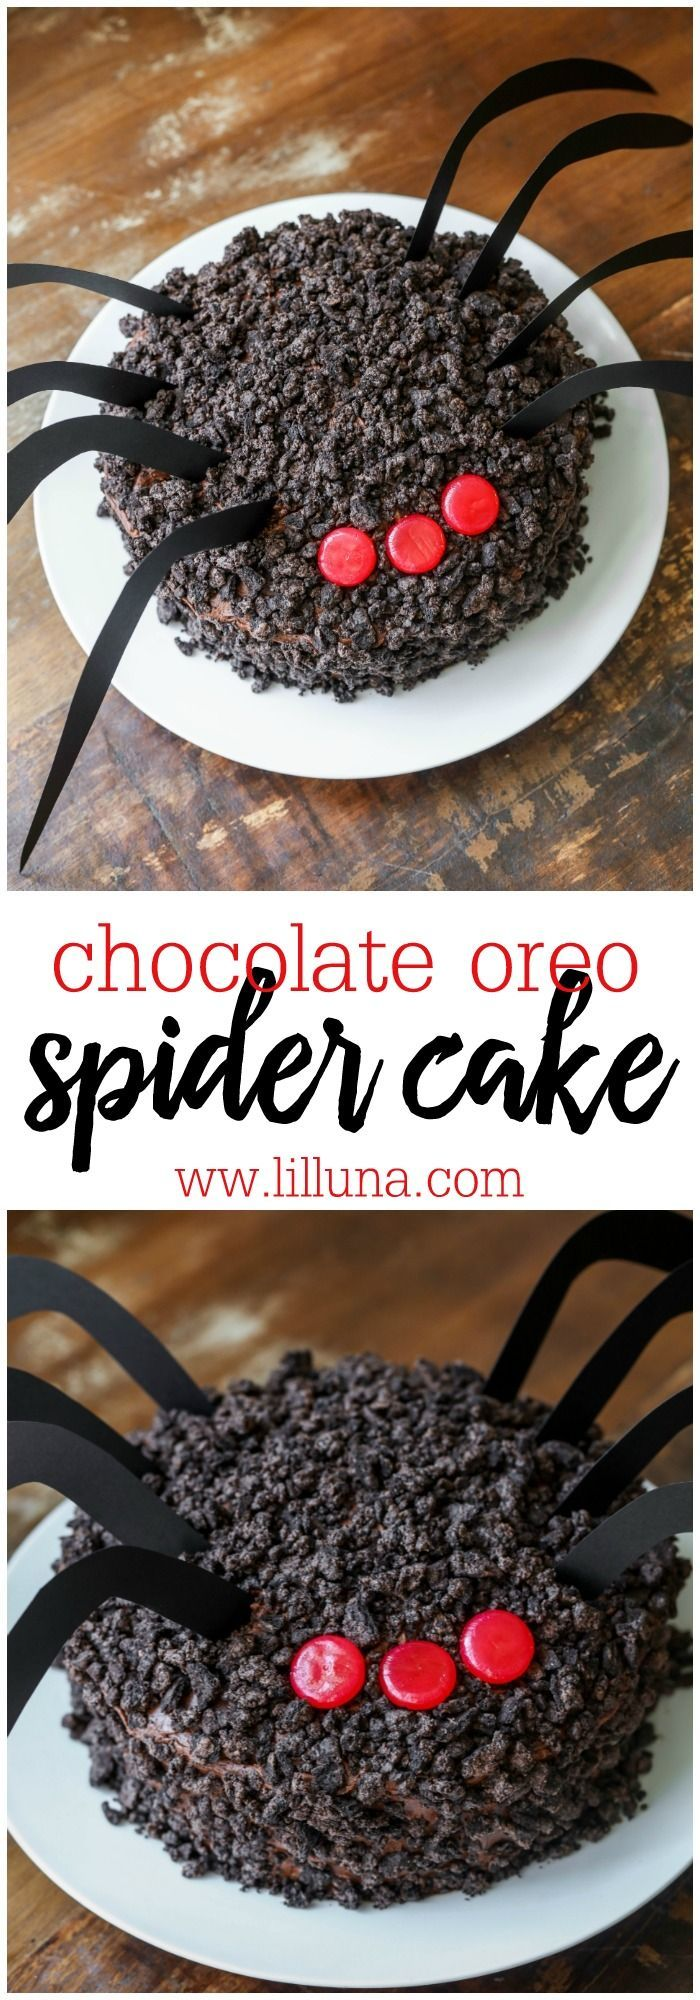 chocolate oreo spider cake a delicious chocolate cake topped with homemade